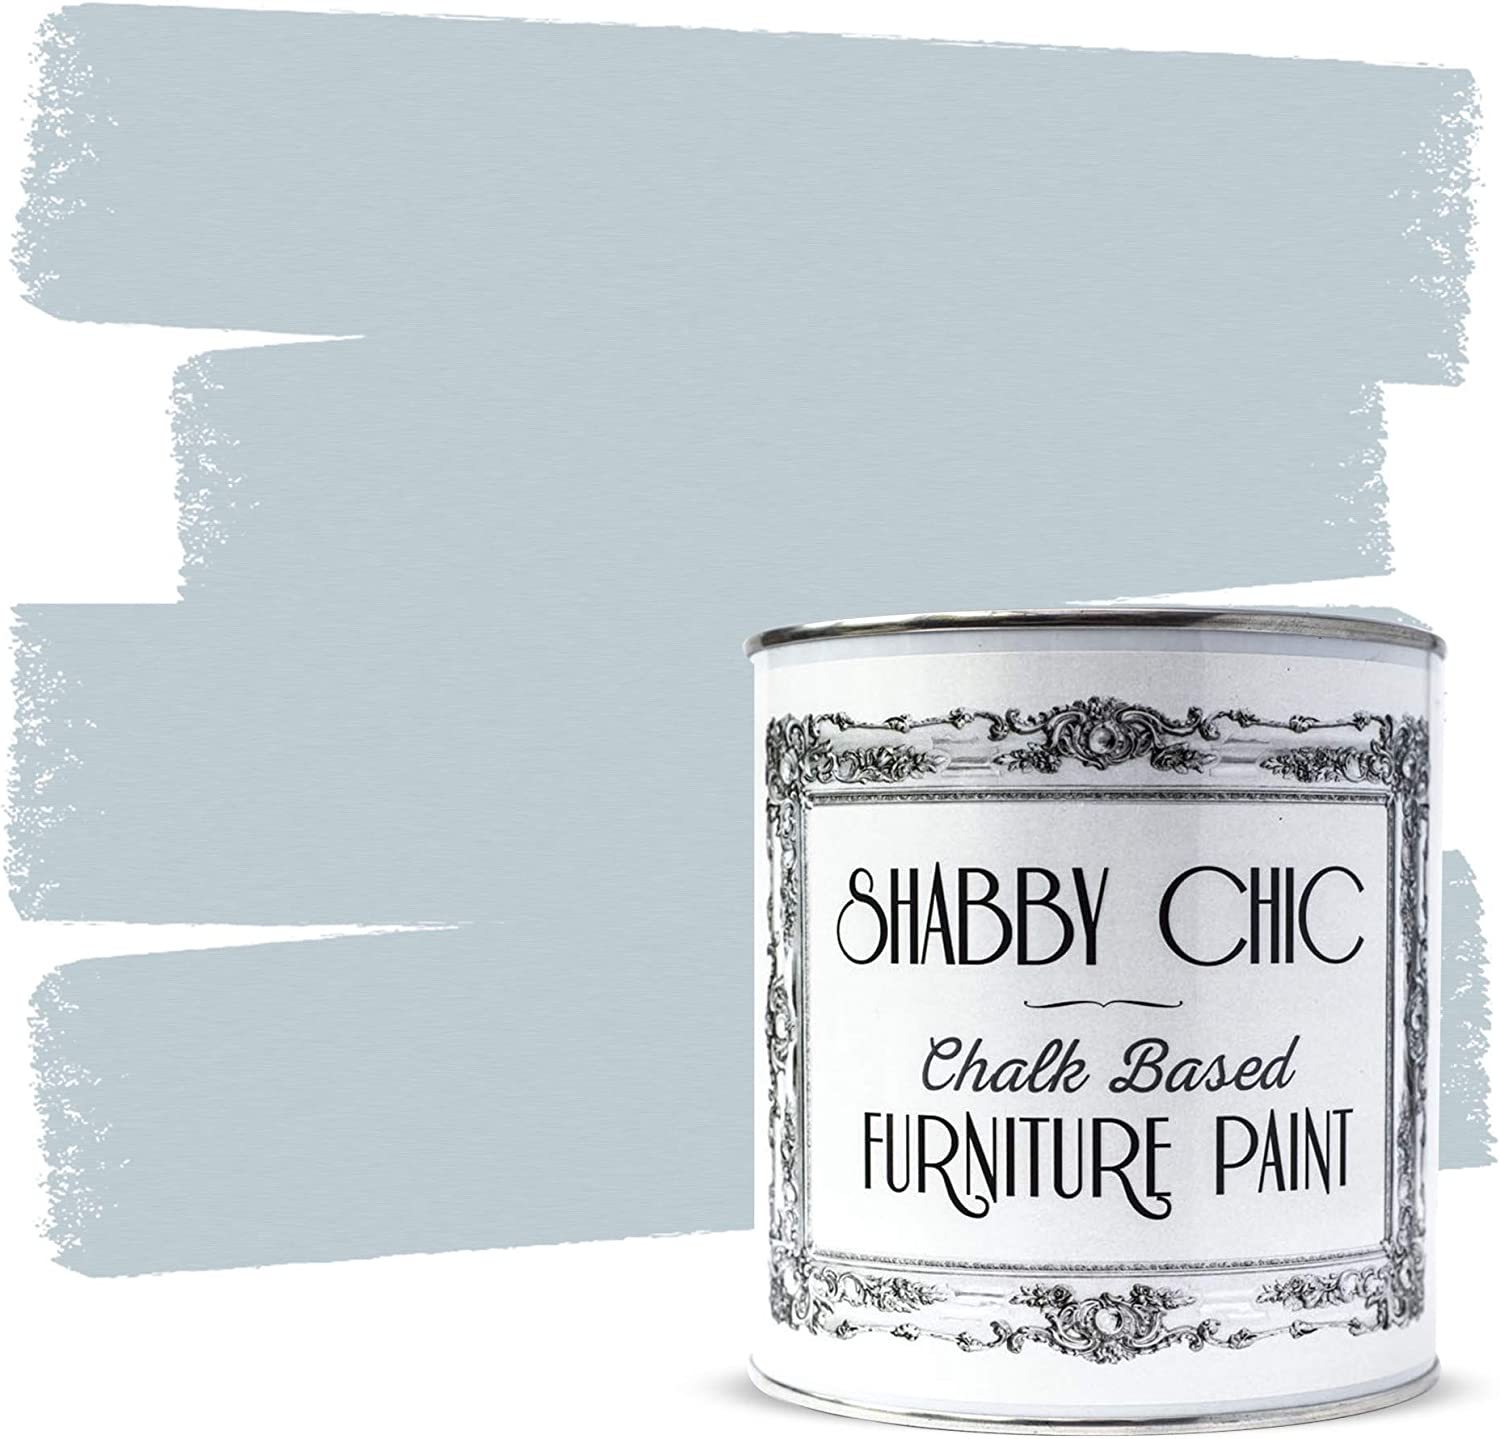 Shabby Chic Furniture Chalk Paint: Chalk Based Furniture and Craft Paint for Home Decor, DIY Projects, Wood Furniture - Chalked Interior Paints with Rustic Matte Finish - 250ml - Caesious